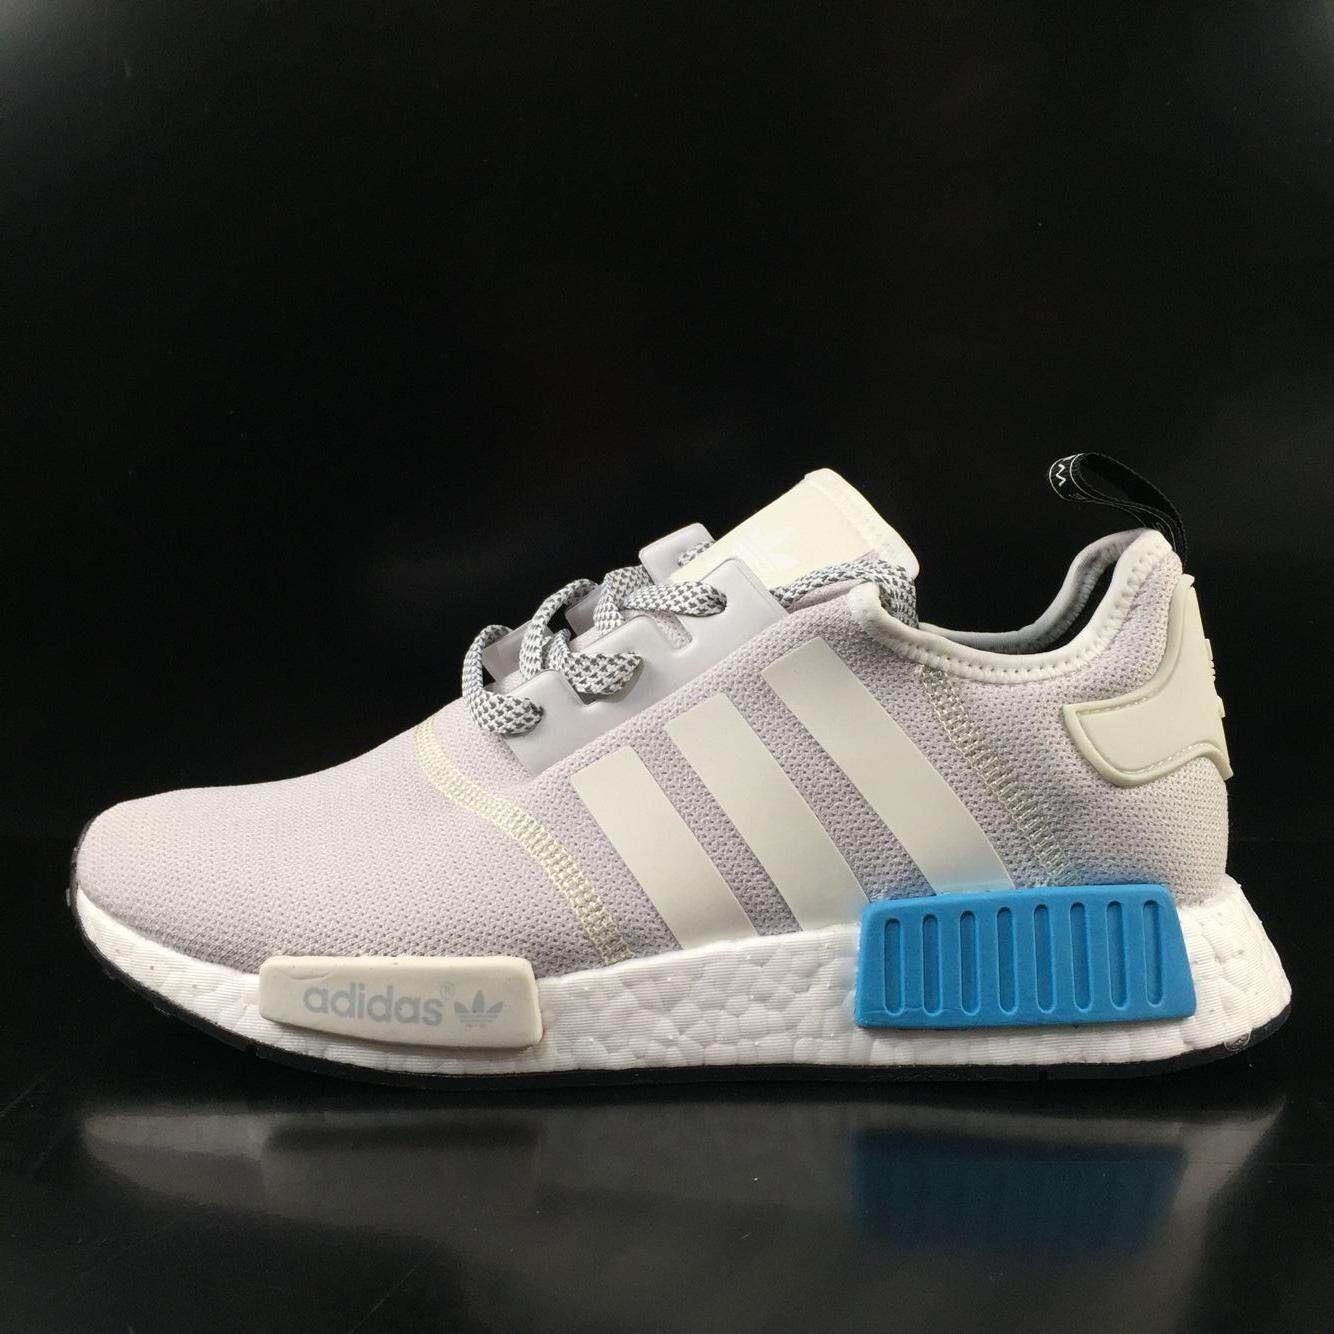 9fbf9bba2358d Sale ADIDA NMD  R1 Runner Nomad Boost S80207 Women and Men Running Shoes  (Grey Blue